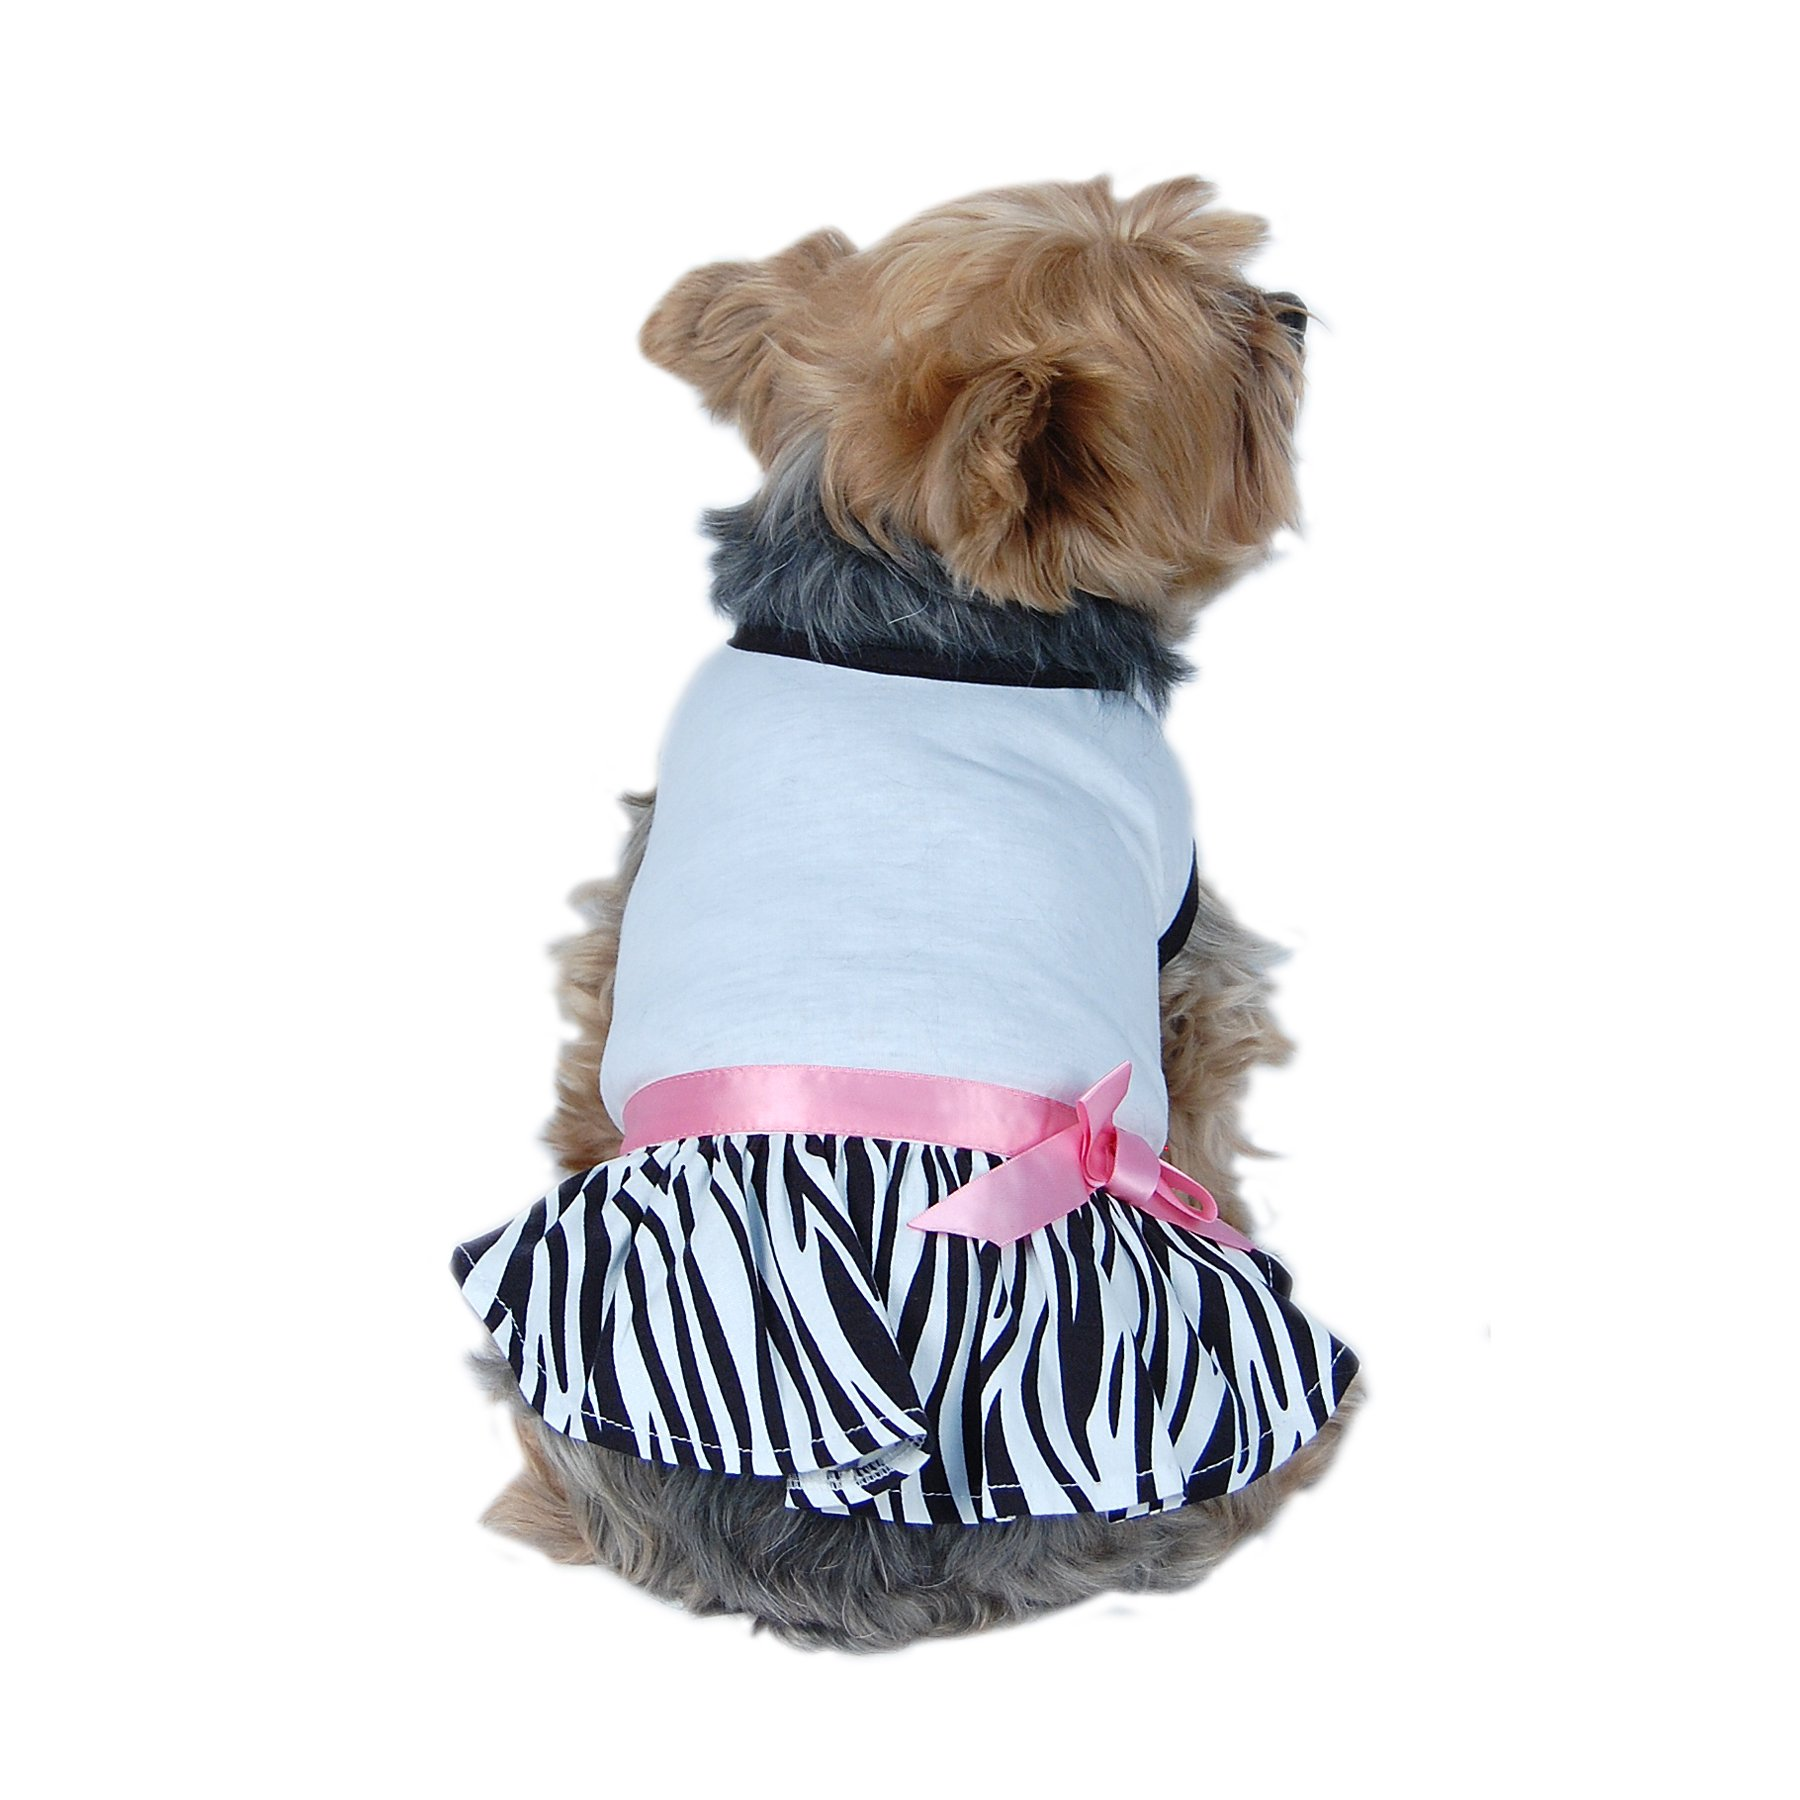 Dog Zebra Dress with White Cotton Top, (For Small Dogs) (XX-Small)